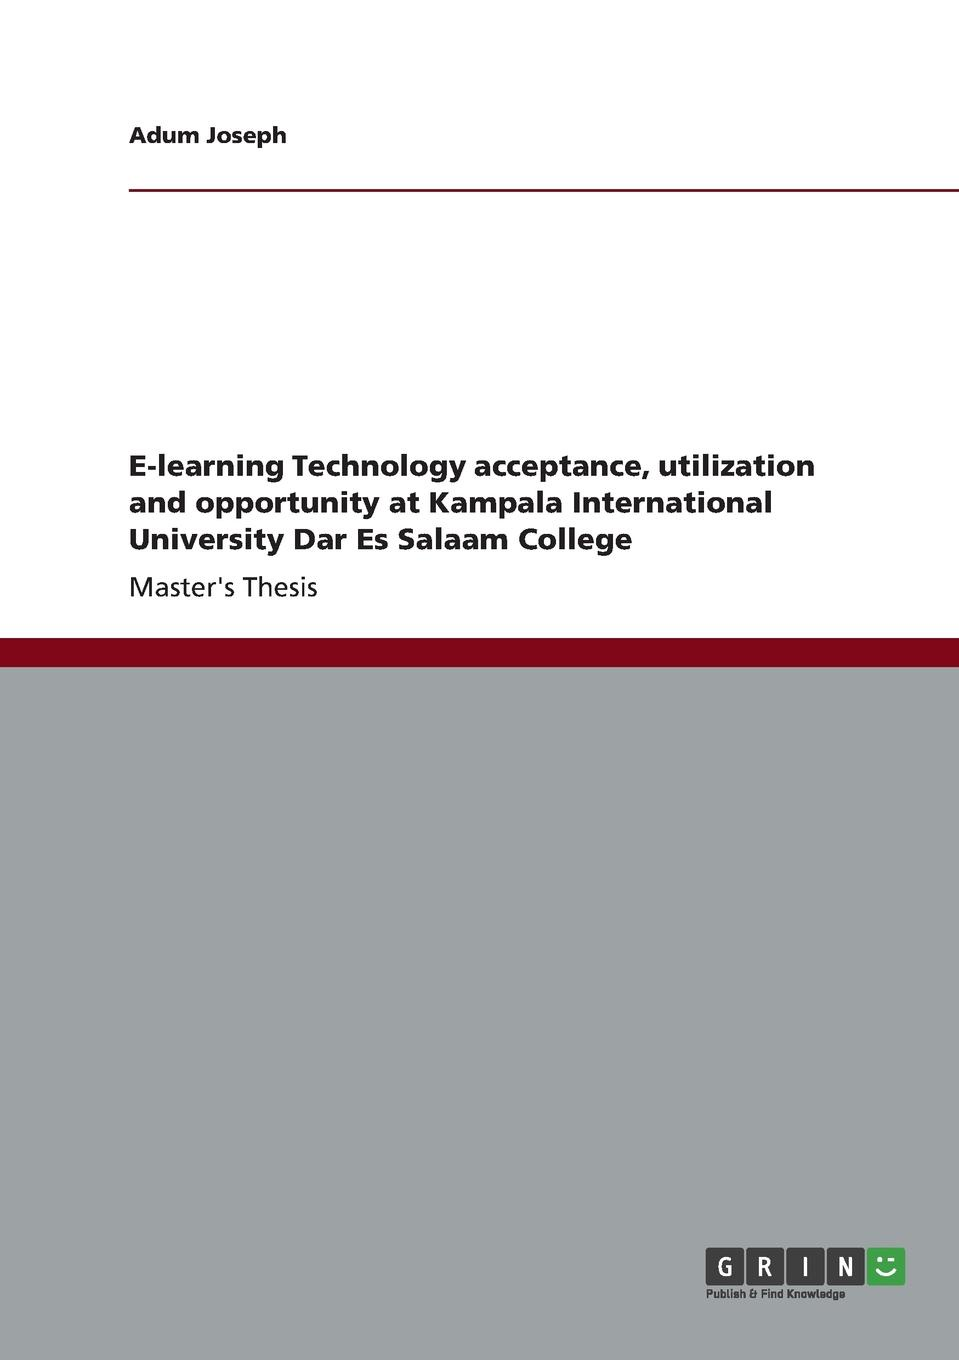 Adum Joseph E-learning Technology acceptance, utilization and opportunity at Kampala International University Dar Es Salaam College james kalmbach the computer and the page the theory history and pedagogy of publishing technology and the classroom